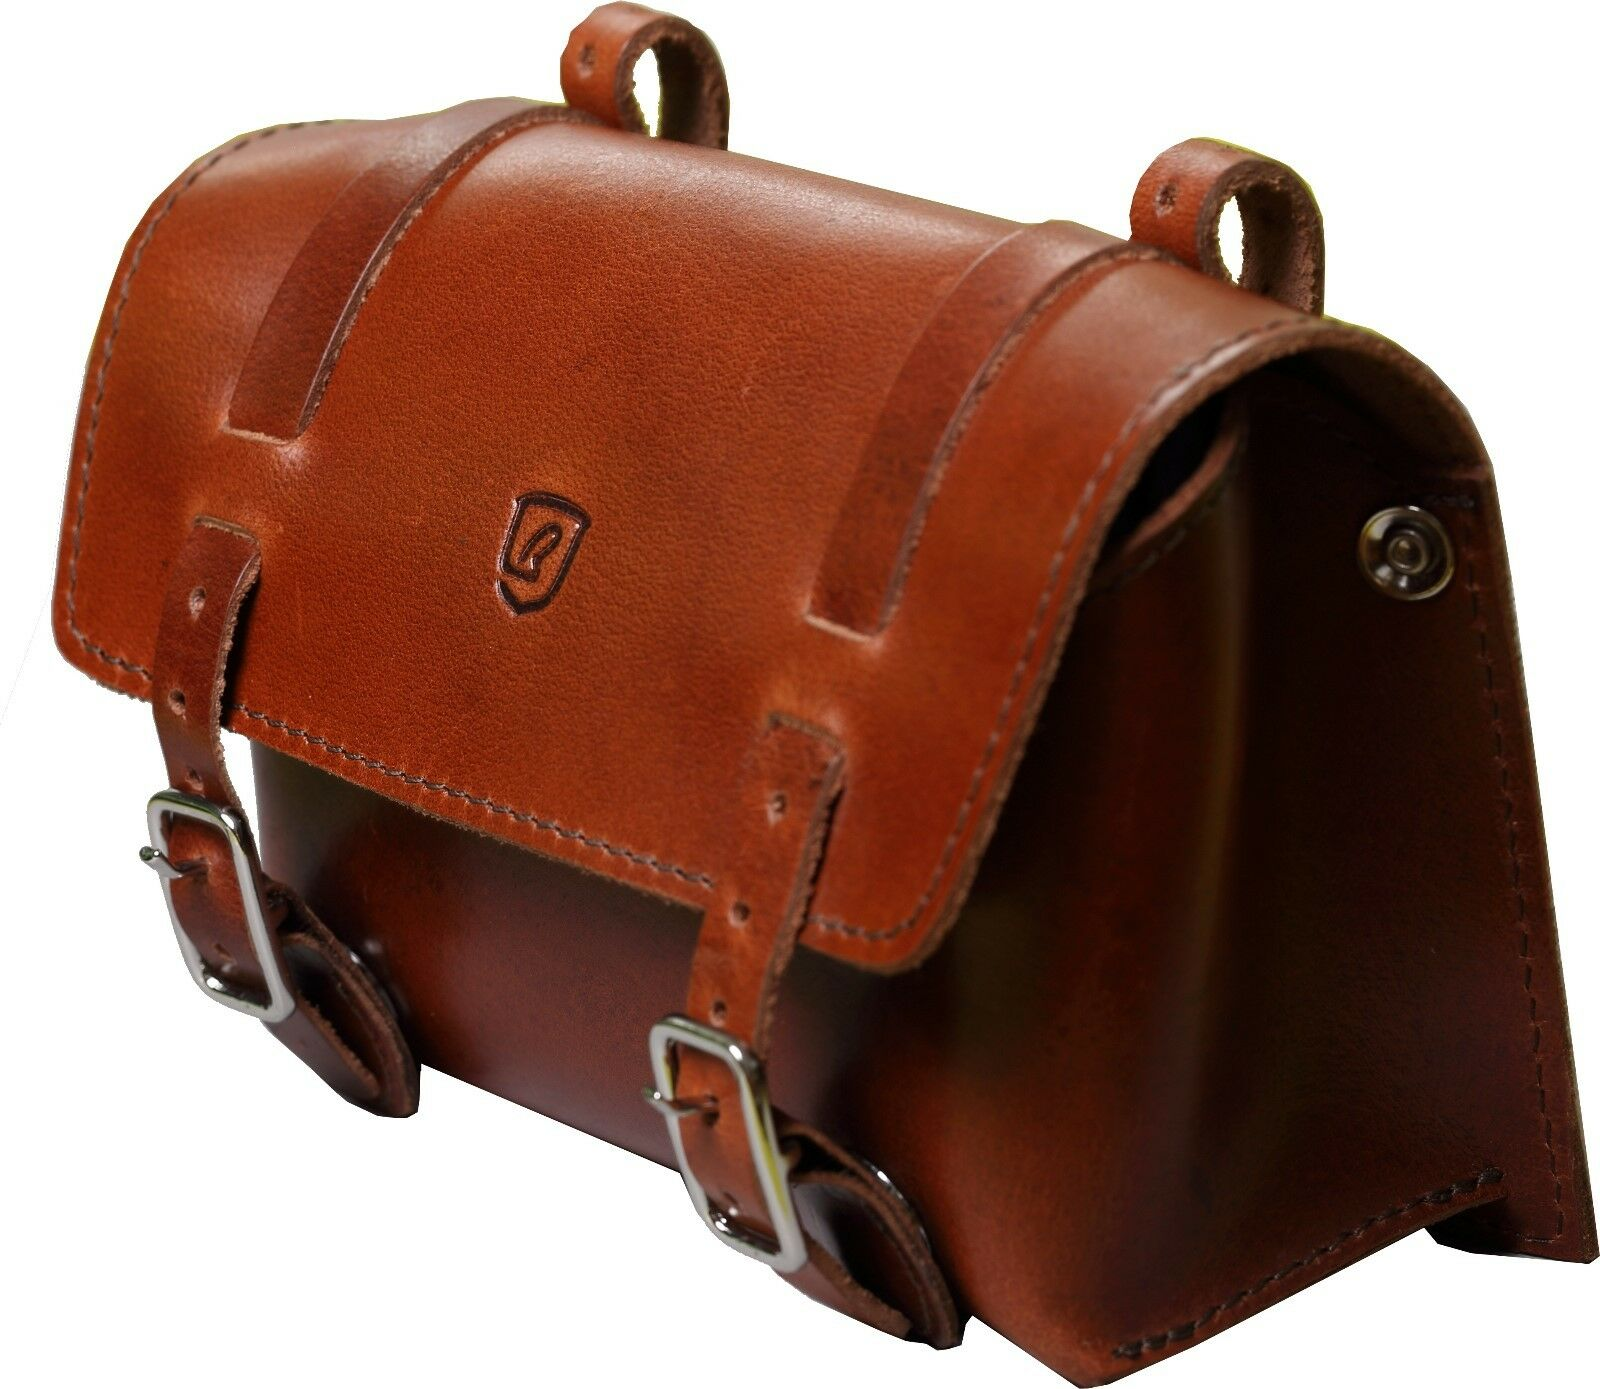 Brave classic saddlebag  brown leather buffalo large  no minimum